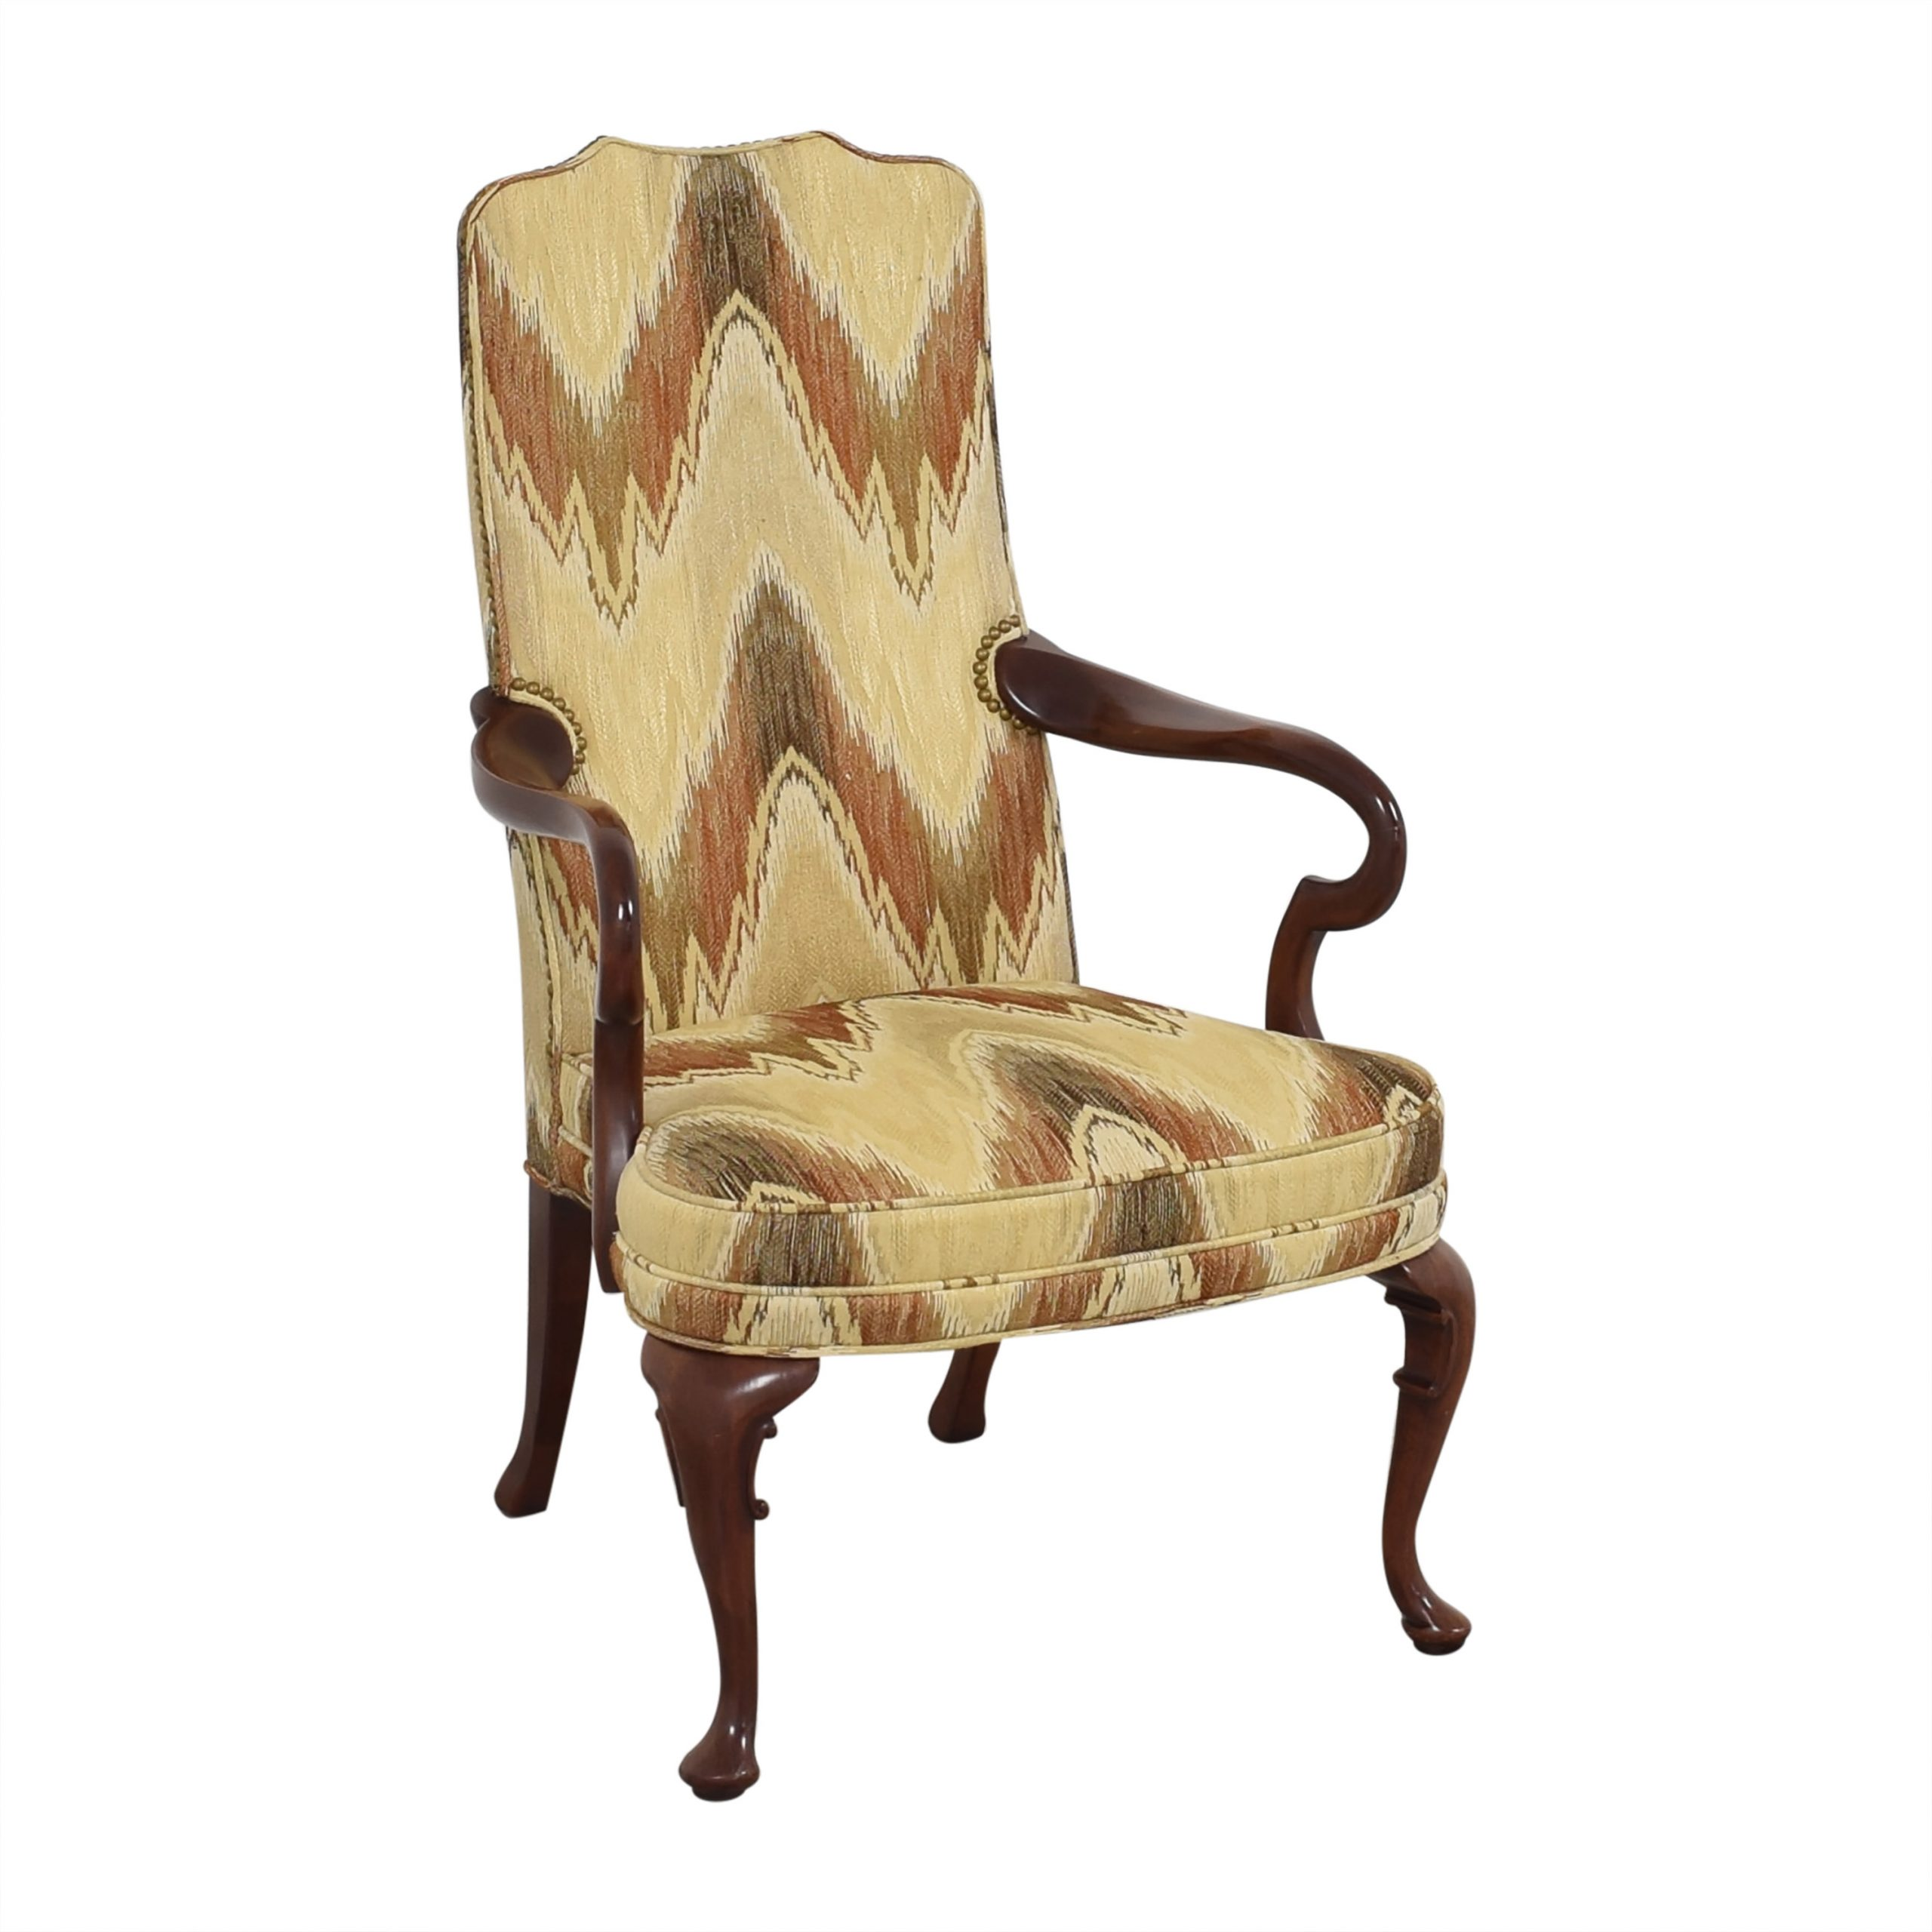 [%79% Off – Hickory Chair Hickory Chair James River Arm Chair With Nailhead  Trim 1892 / Chairs With Favorite James Armchairs|james Armchairs With Regard To Fashionable 79% Off – Hickory Chair Hickory Chair James River Arm Chair With Nailhead  Trim 1892 / Chairs|well Known James Armchairs Intended For 79% Off – Hickory Chair Hickory Chair James River Arm Chair With Nailhead  Trim 1892 / Chairs|favorite 79% Off – Hickory Chair Hickory Chair James River Arm Chair With Nailhead  Trim 1892 / Chairs In James Armchairs%] (View 17 of 20)